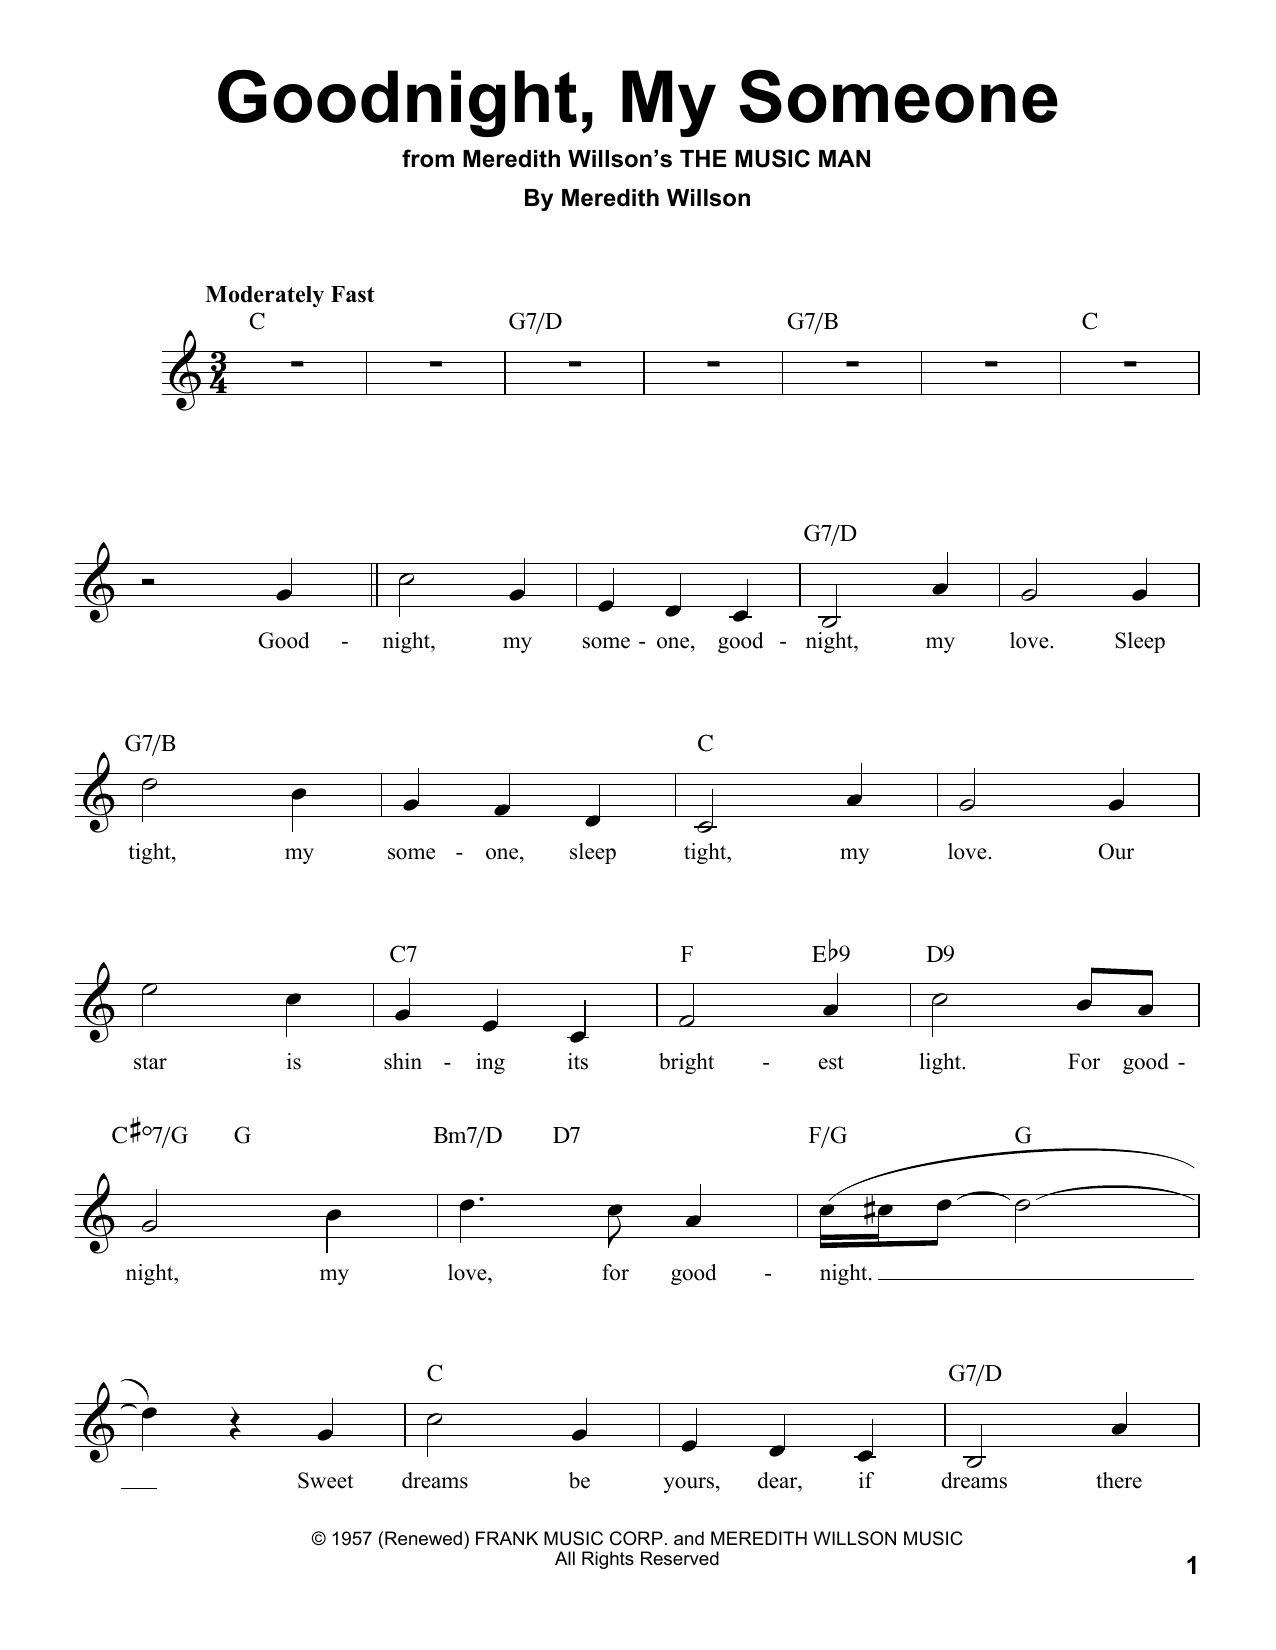 Goodnight, My Someone Sheet Music